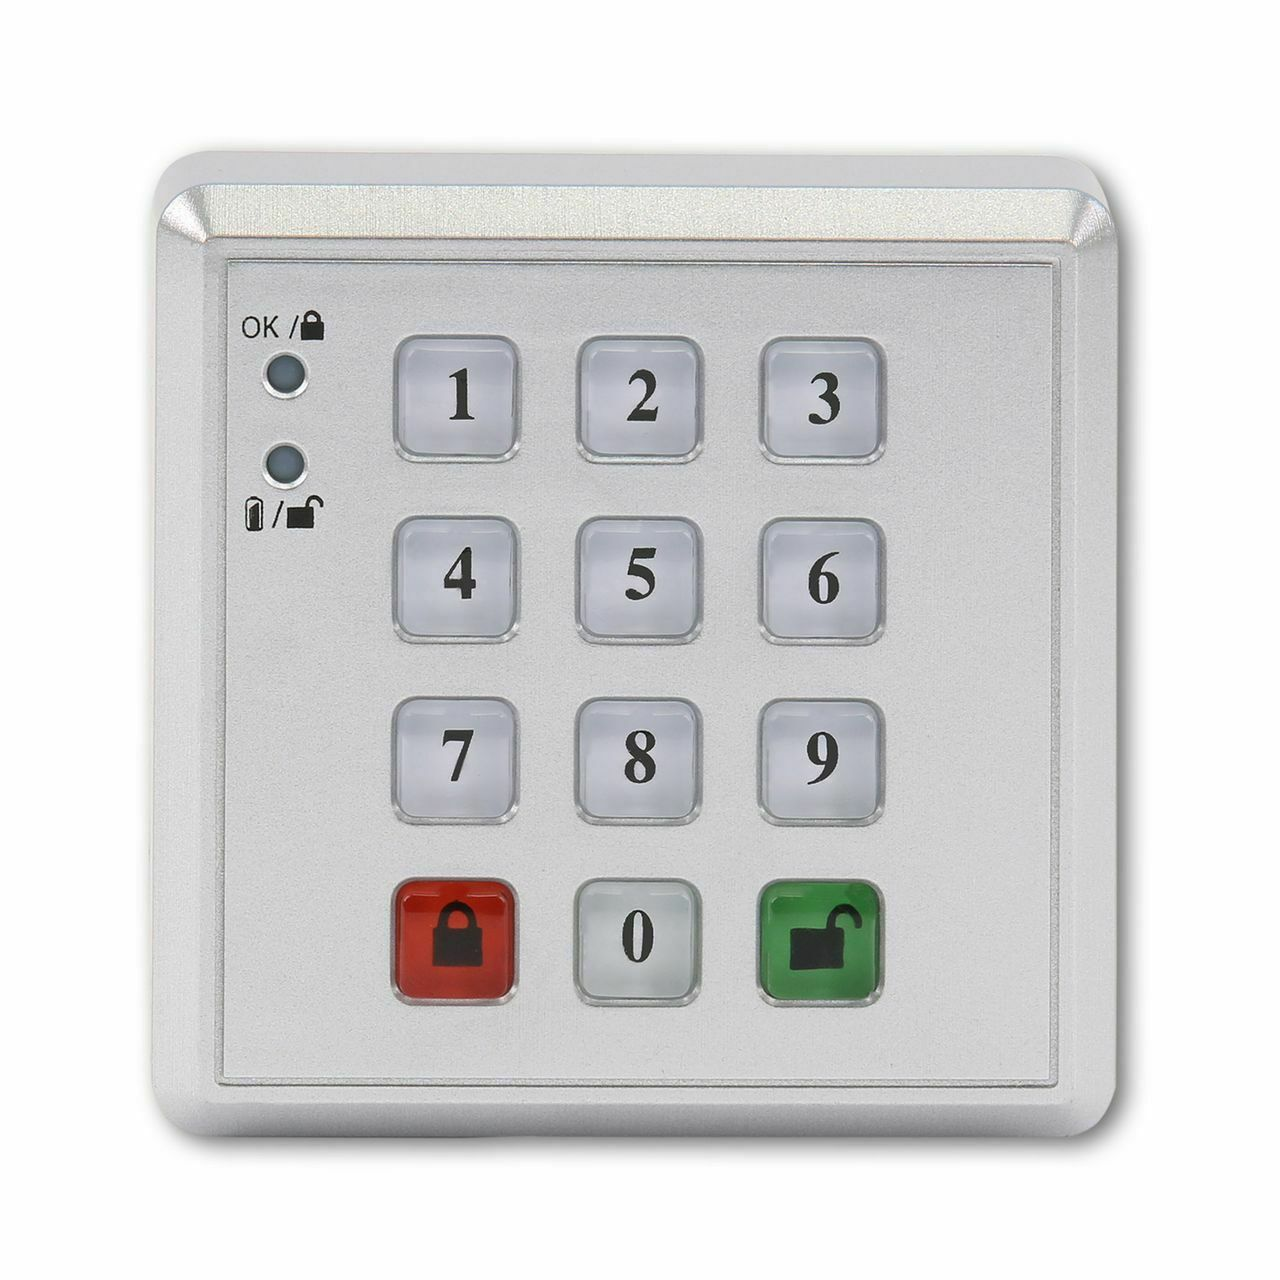 OLYMPIA Access Control Keypad, Predect und ProHome Systeme